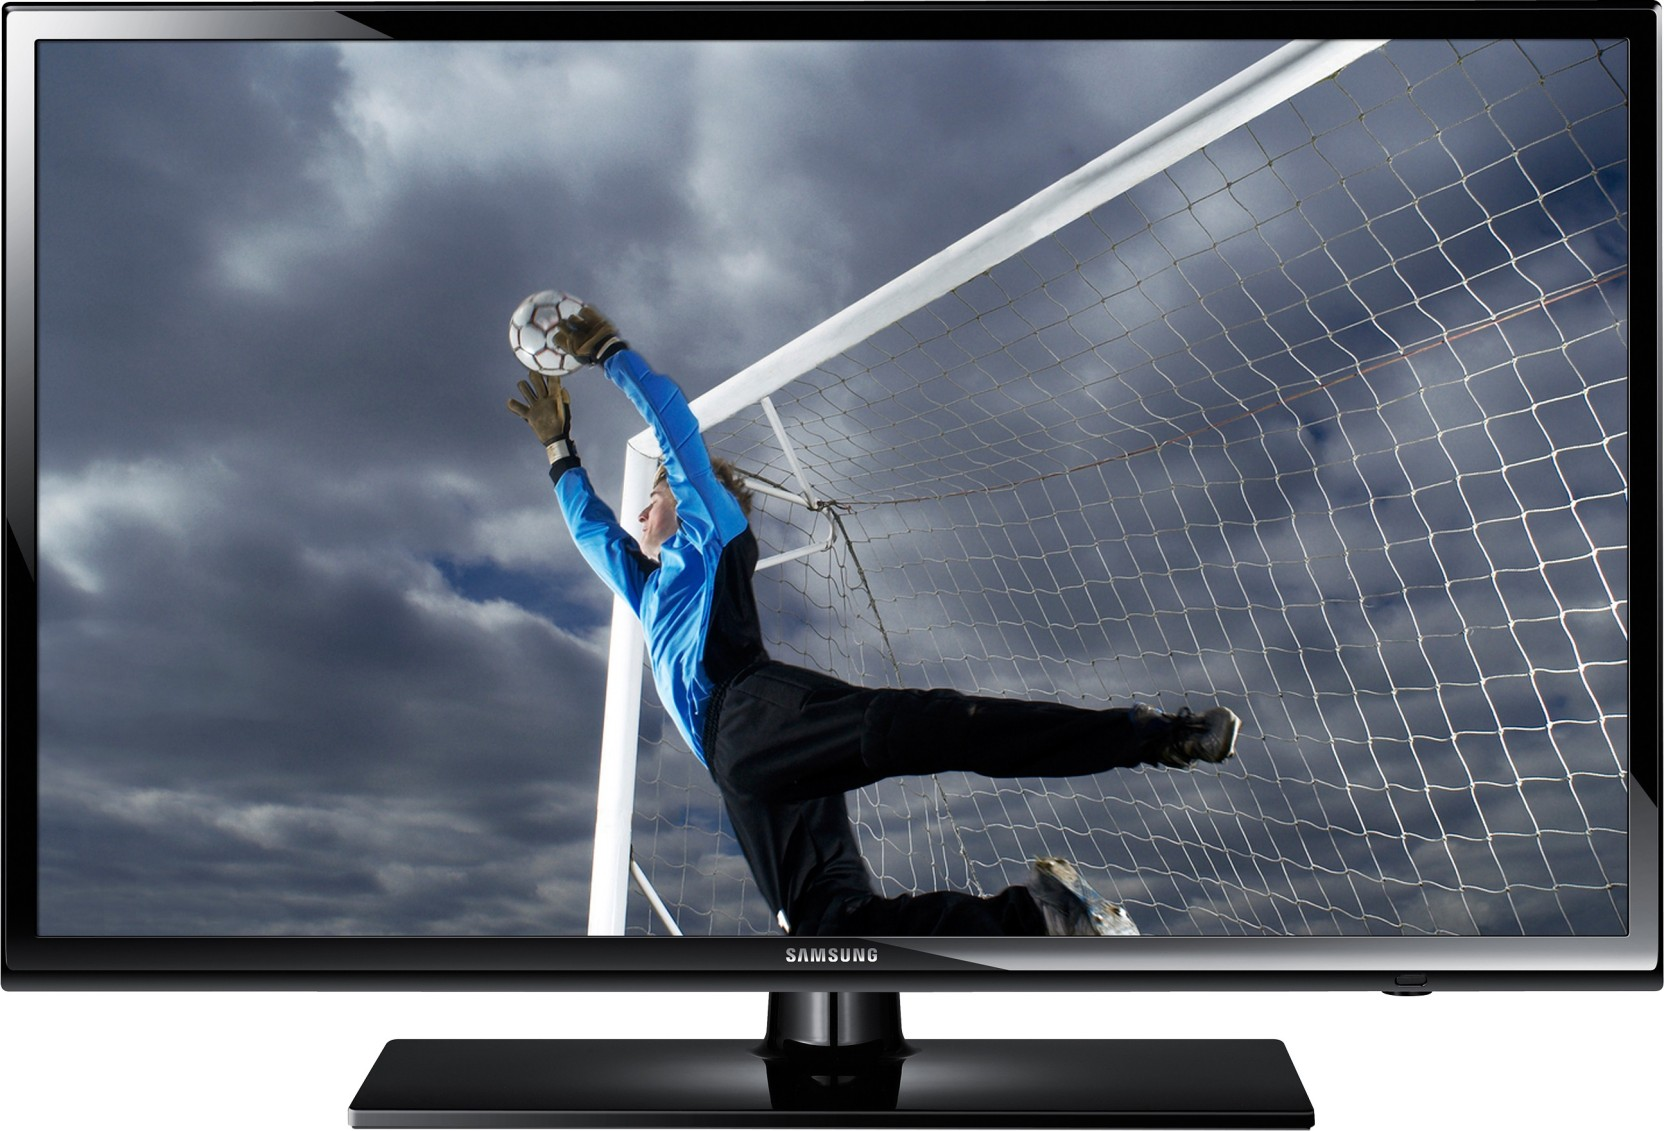 Samsung Series 4 80cm (32 inch) HD Ready LED TV. ADD TO CART